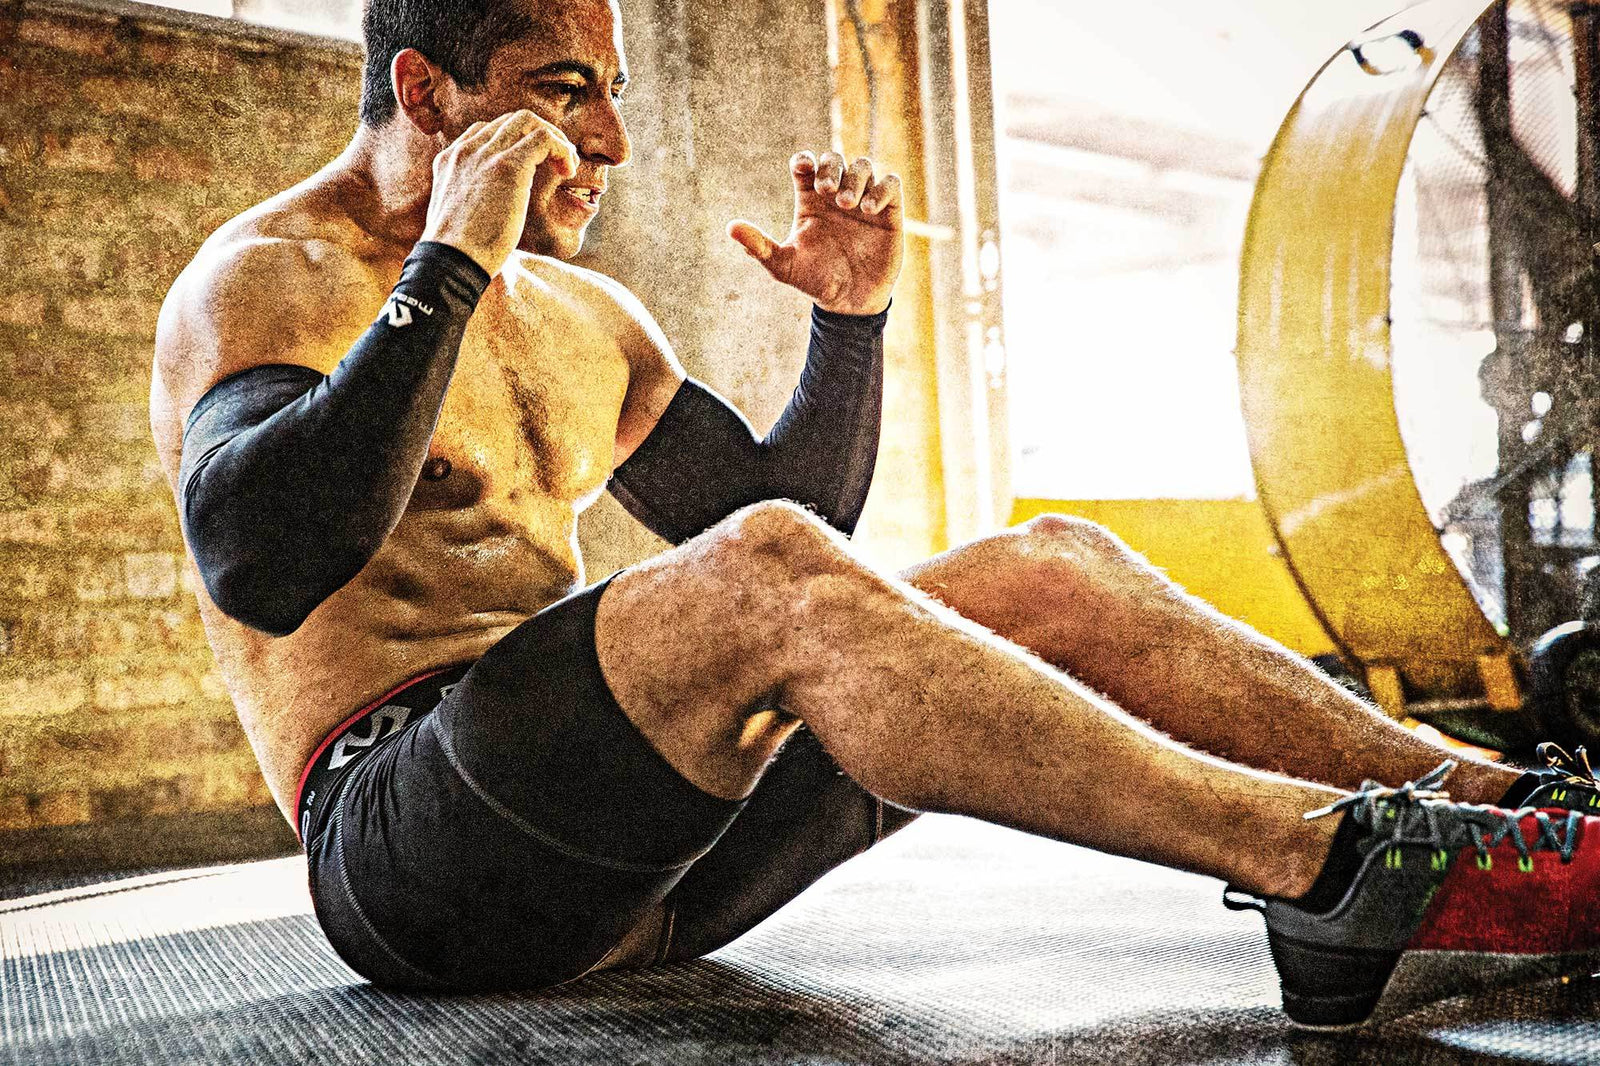 Top 10 Benefits of Wearing Compression Shorts During Your